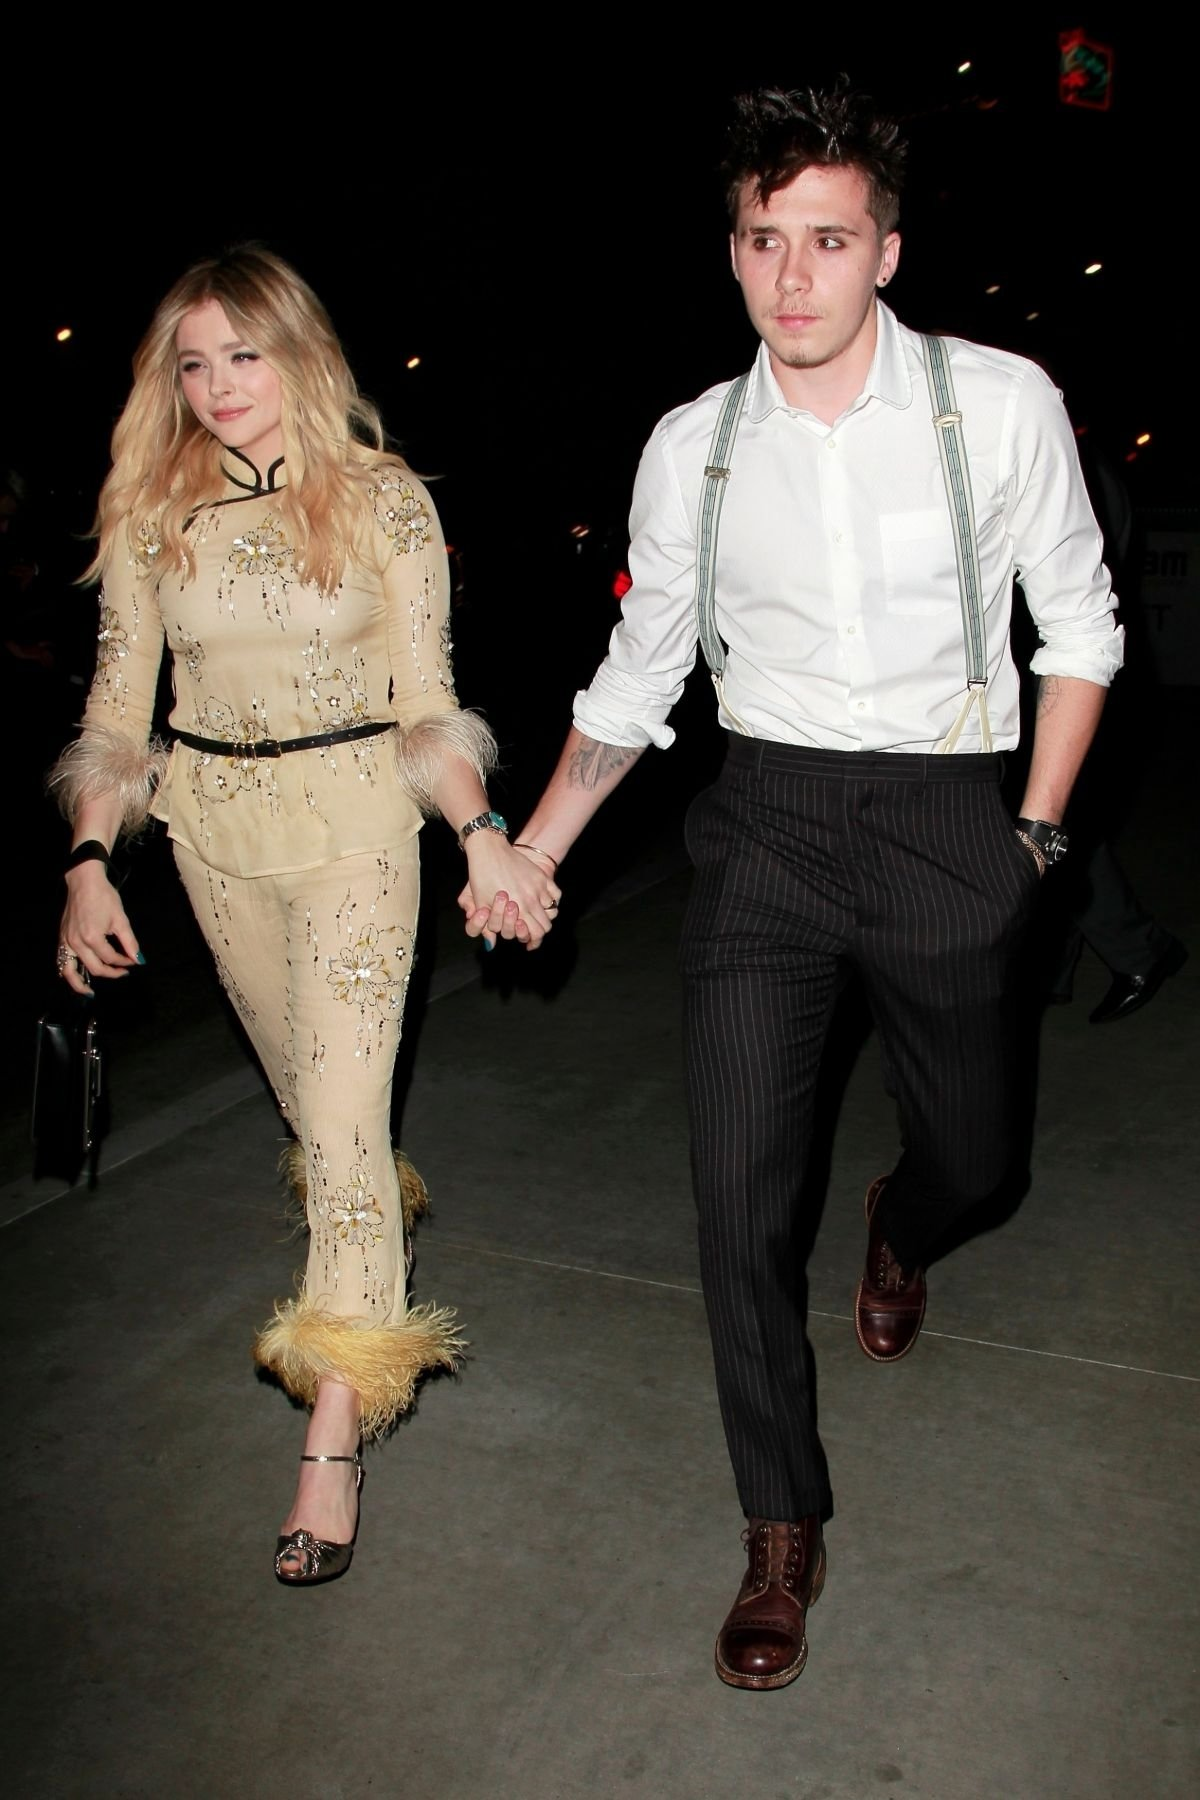 10 Most Recommended 21St Birthday Ideas Los Angeles chloe moretz celebrates her 21st birthday with brooklyn beckham in 1 2020